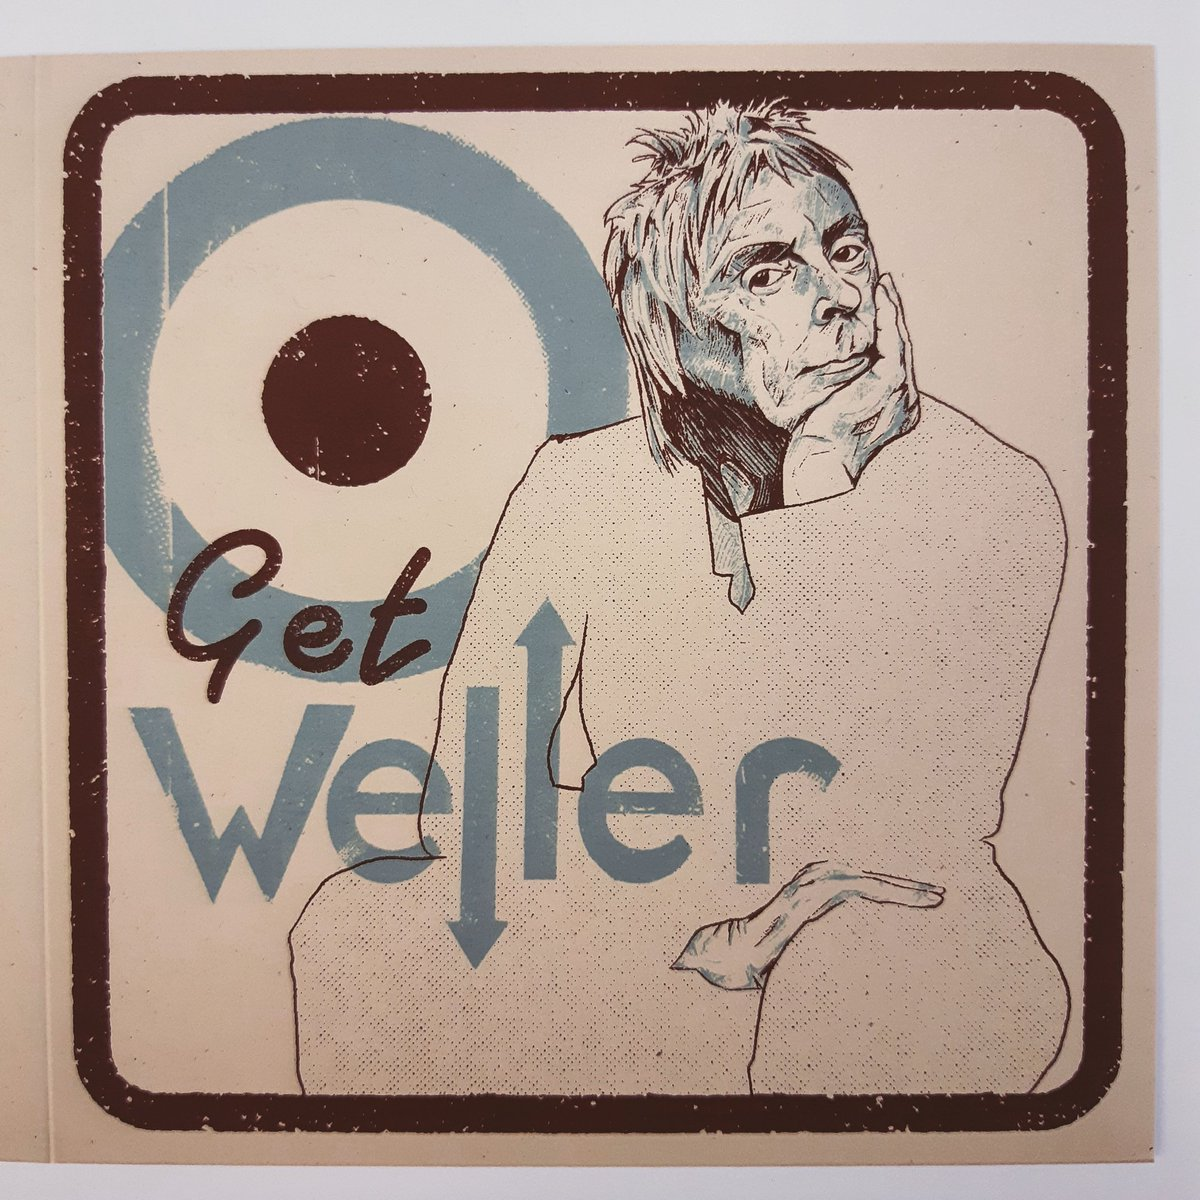 New! I'm creating a series of #giftcards They will all feature my #illustrations be totally #handmade by me.  Featuring #icons #cultural #figures from #music and #TV #film This one is a #getwell #card featuring the #modfather #PaulWeller  #cultstatus #screenprint #retro #vintage https://t.co/DKzt5E1Es0